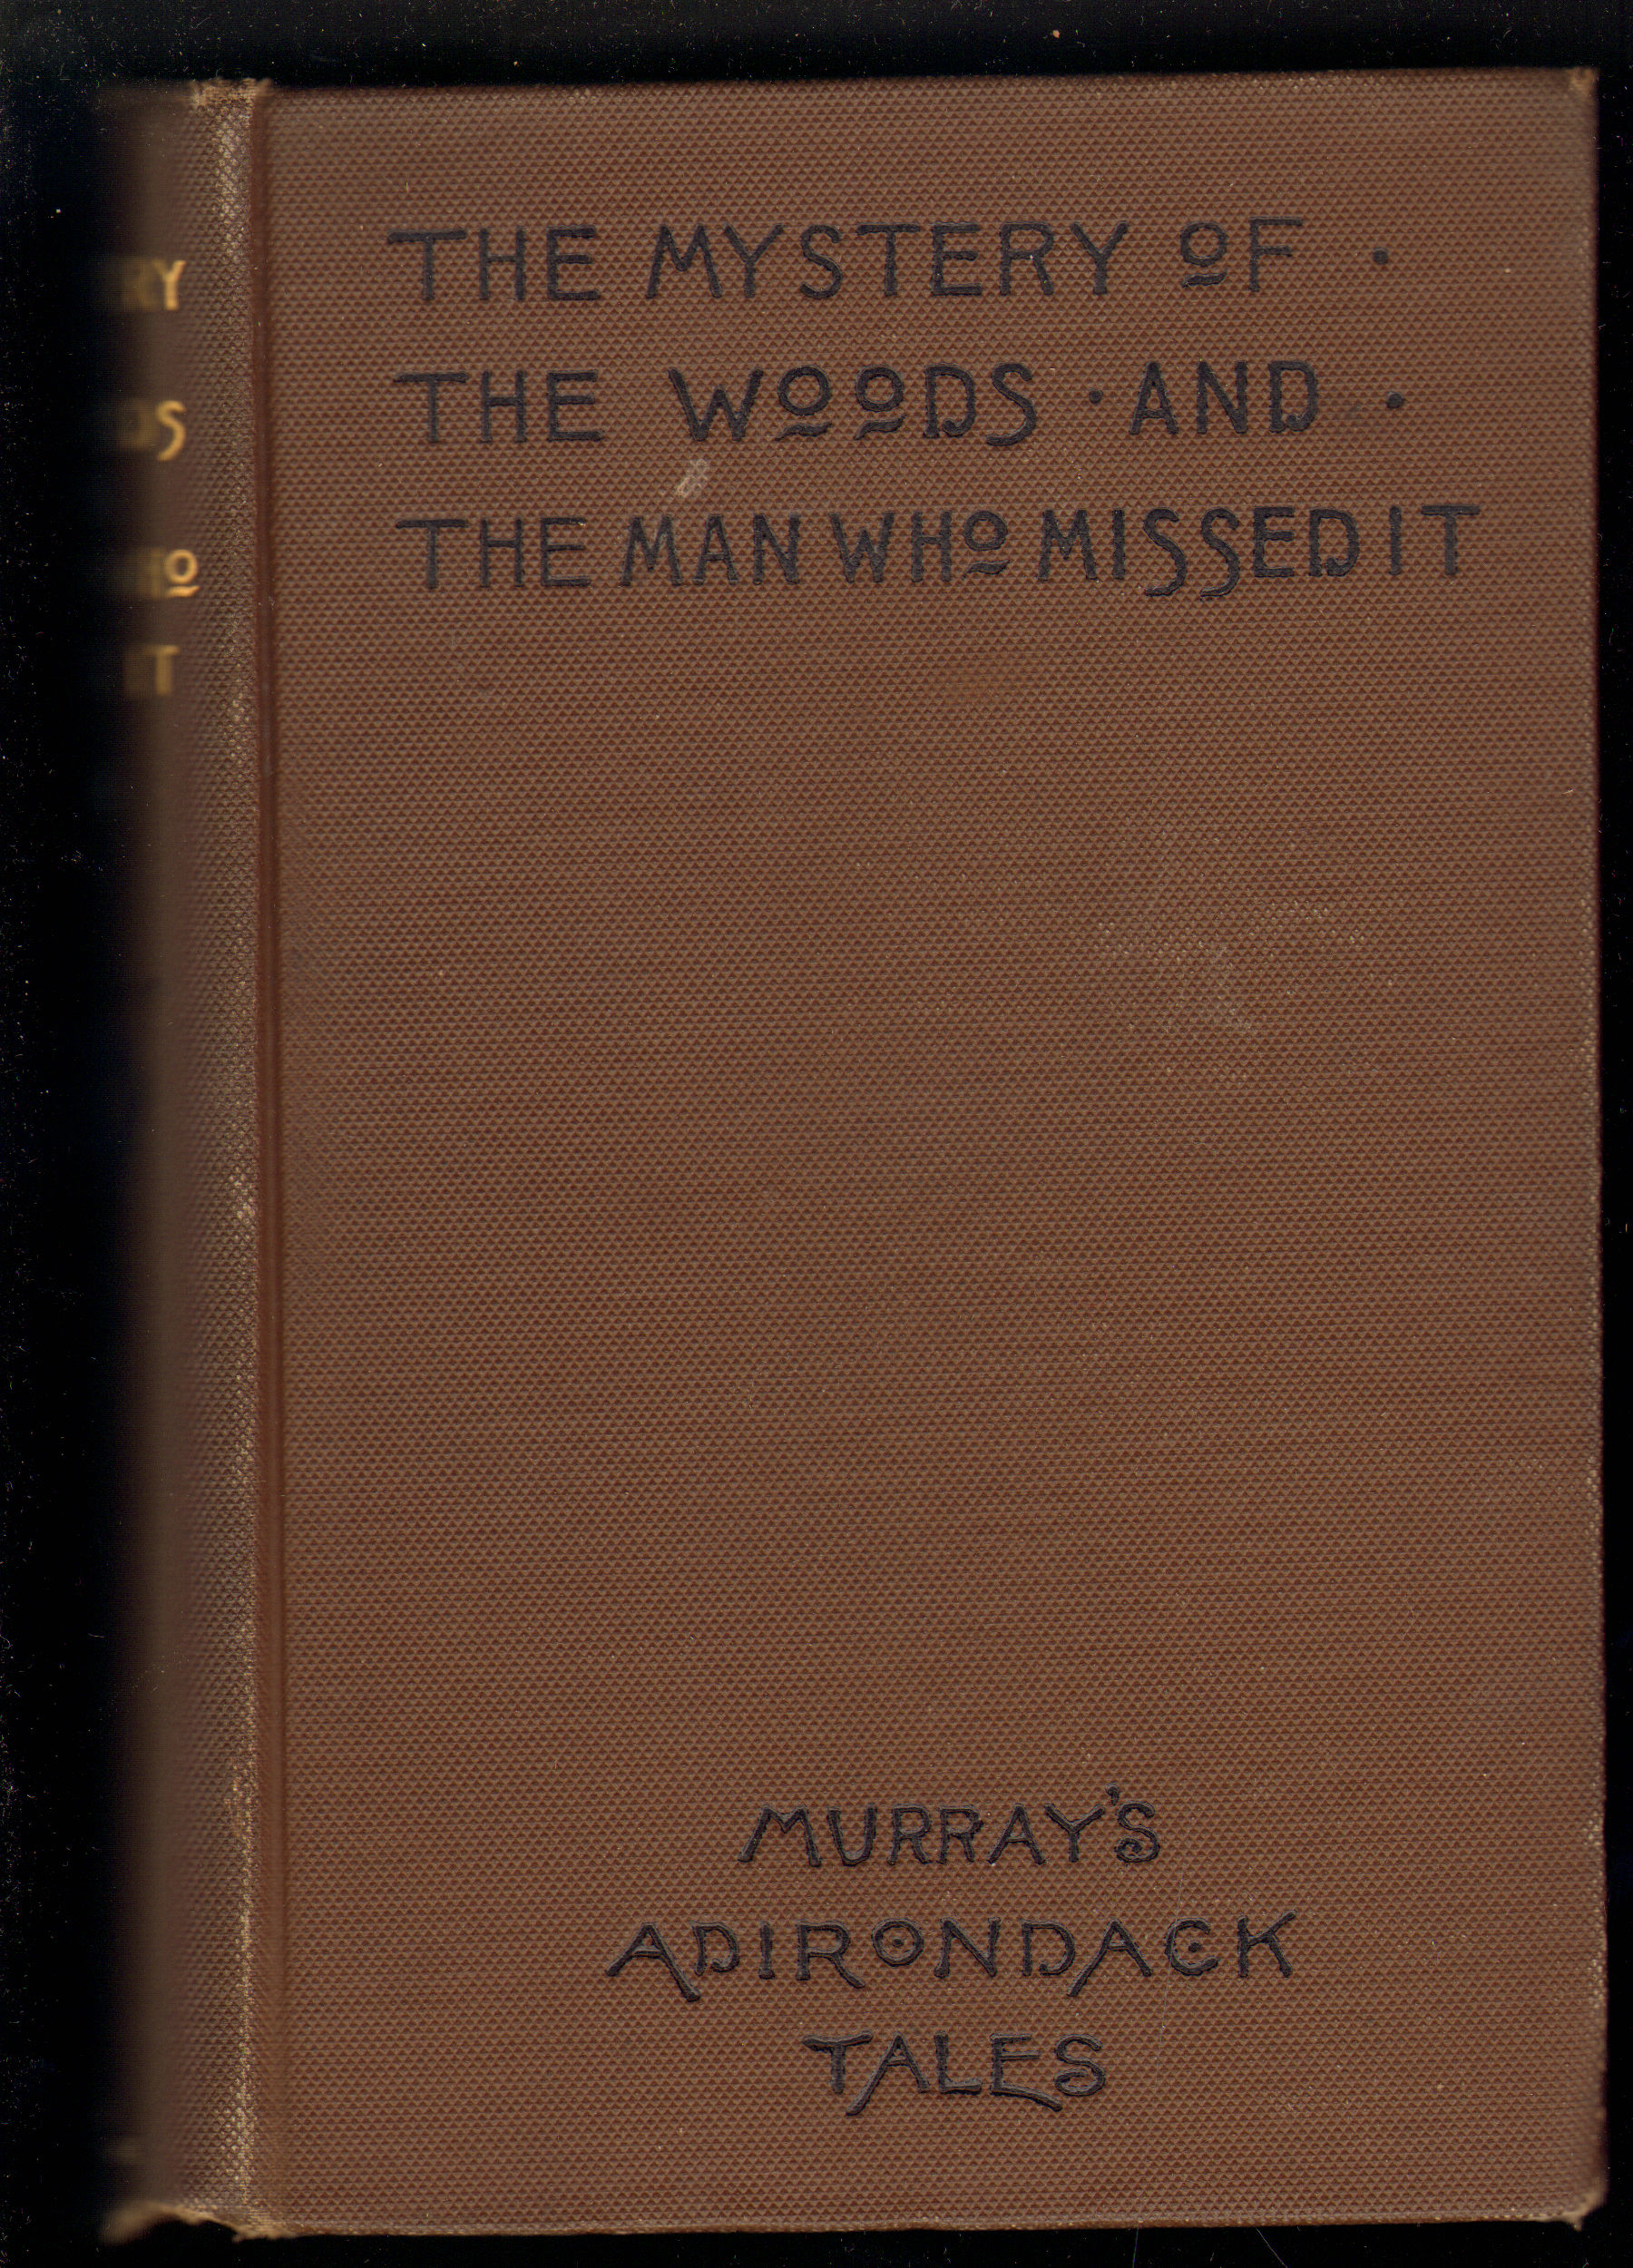 Image for The Mystery of the Woods and The Man Who Missed it (Murray's Adirondack Tales)